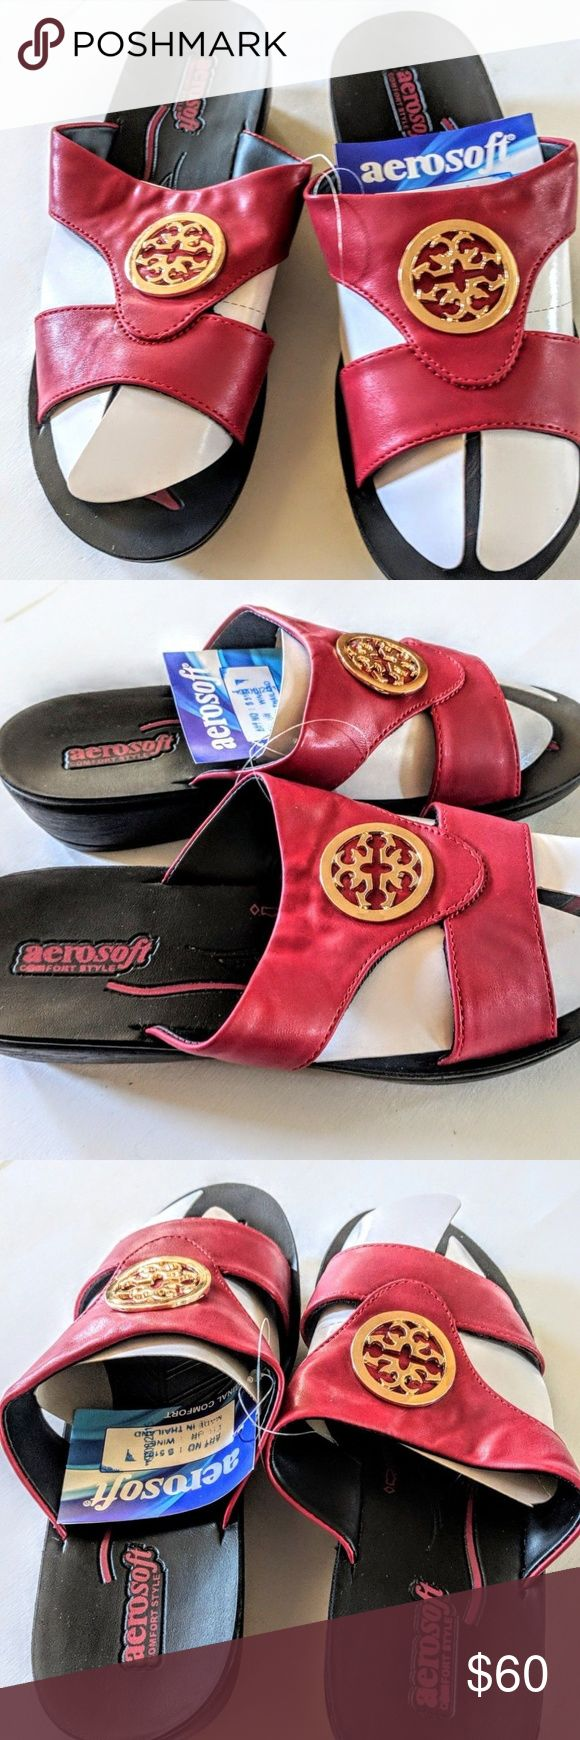 Womens Slip On Sandal Wine Colored Taboo Size 8 Finish your warm-weather ensemble with these slip-on-and-go sandals featuring a gleaming accent and neutral hue. aerosoft Shoes Sandals